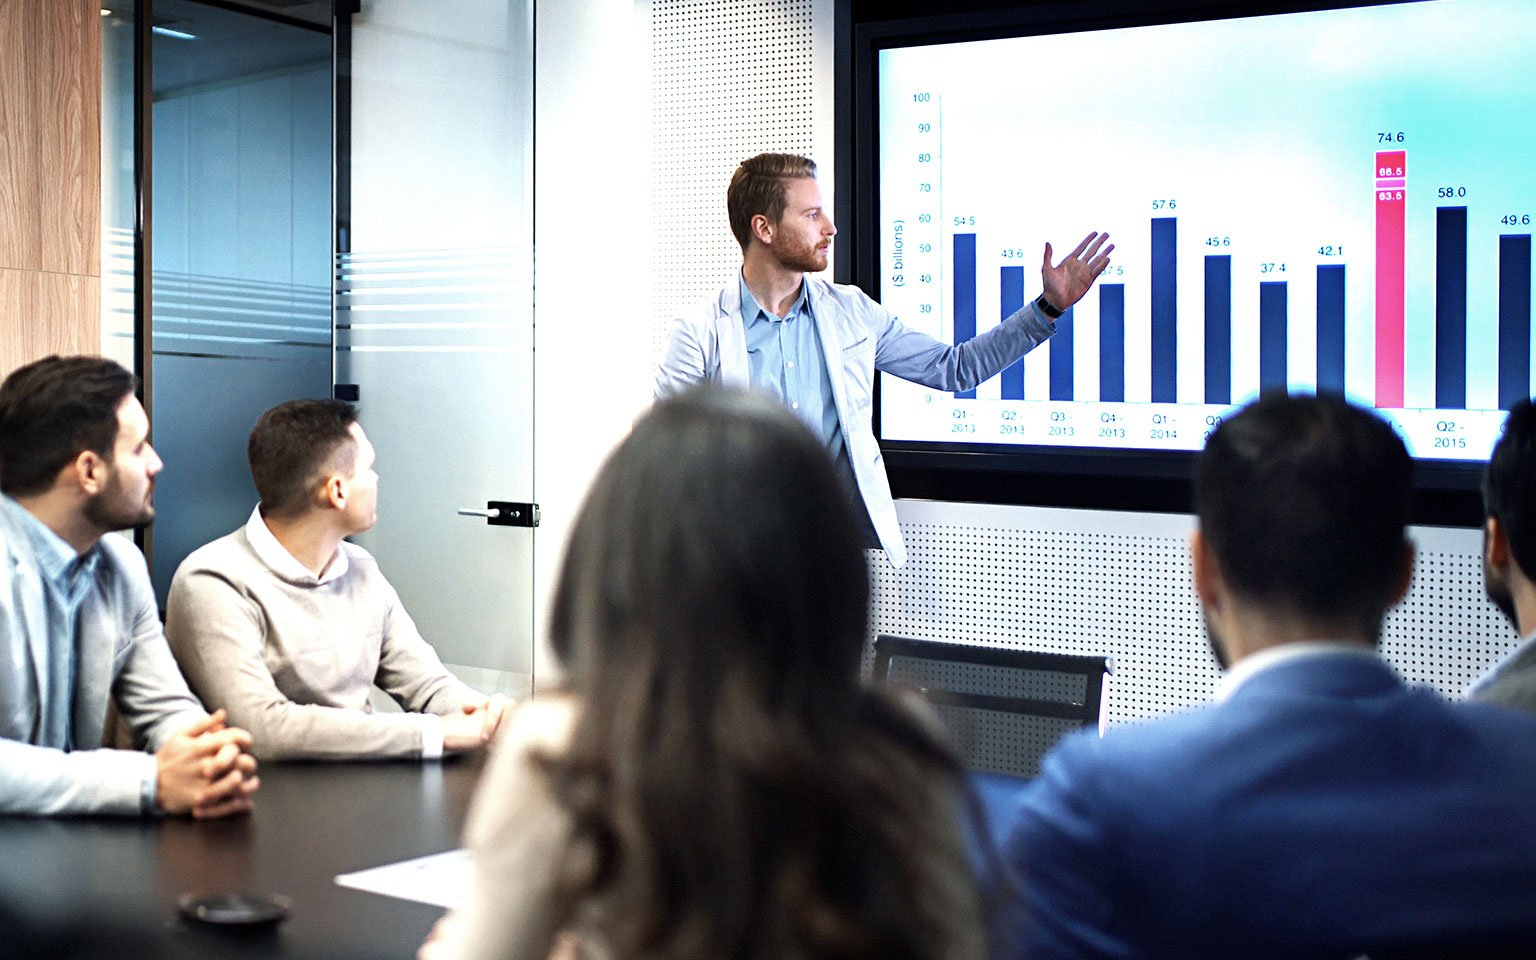 man presenting a graph in a meeting